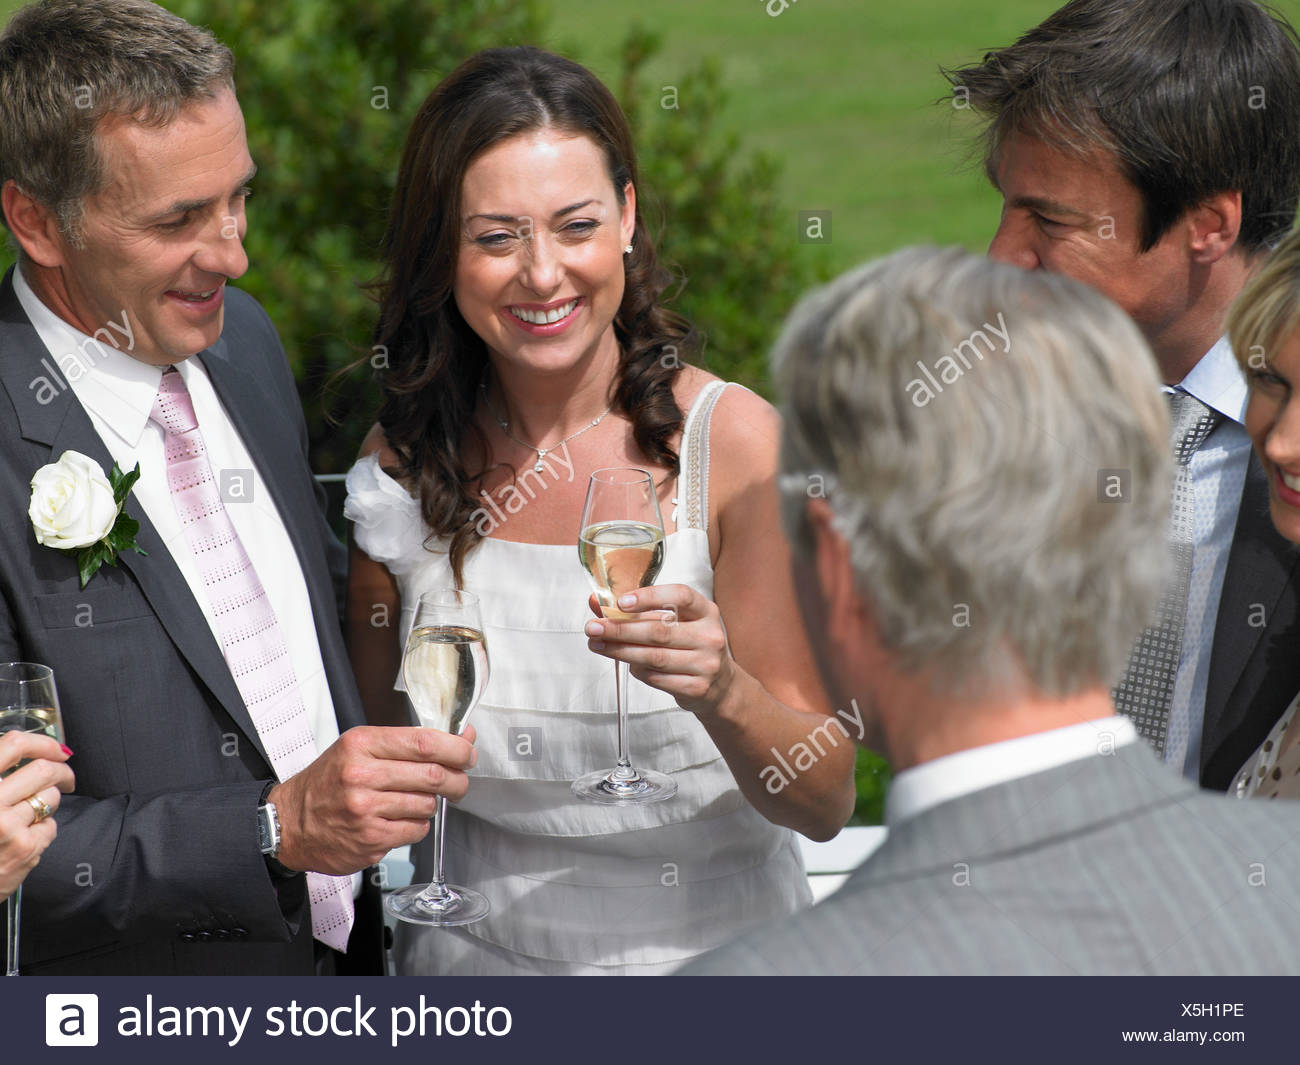 Bride and groom with wedding guests - Stock Image